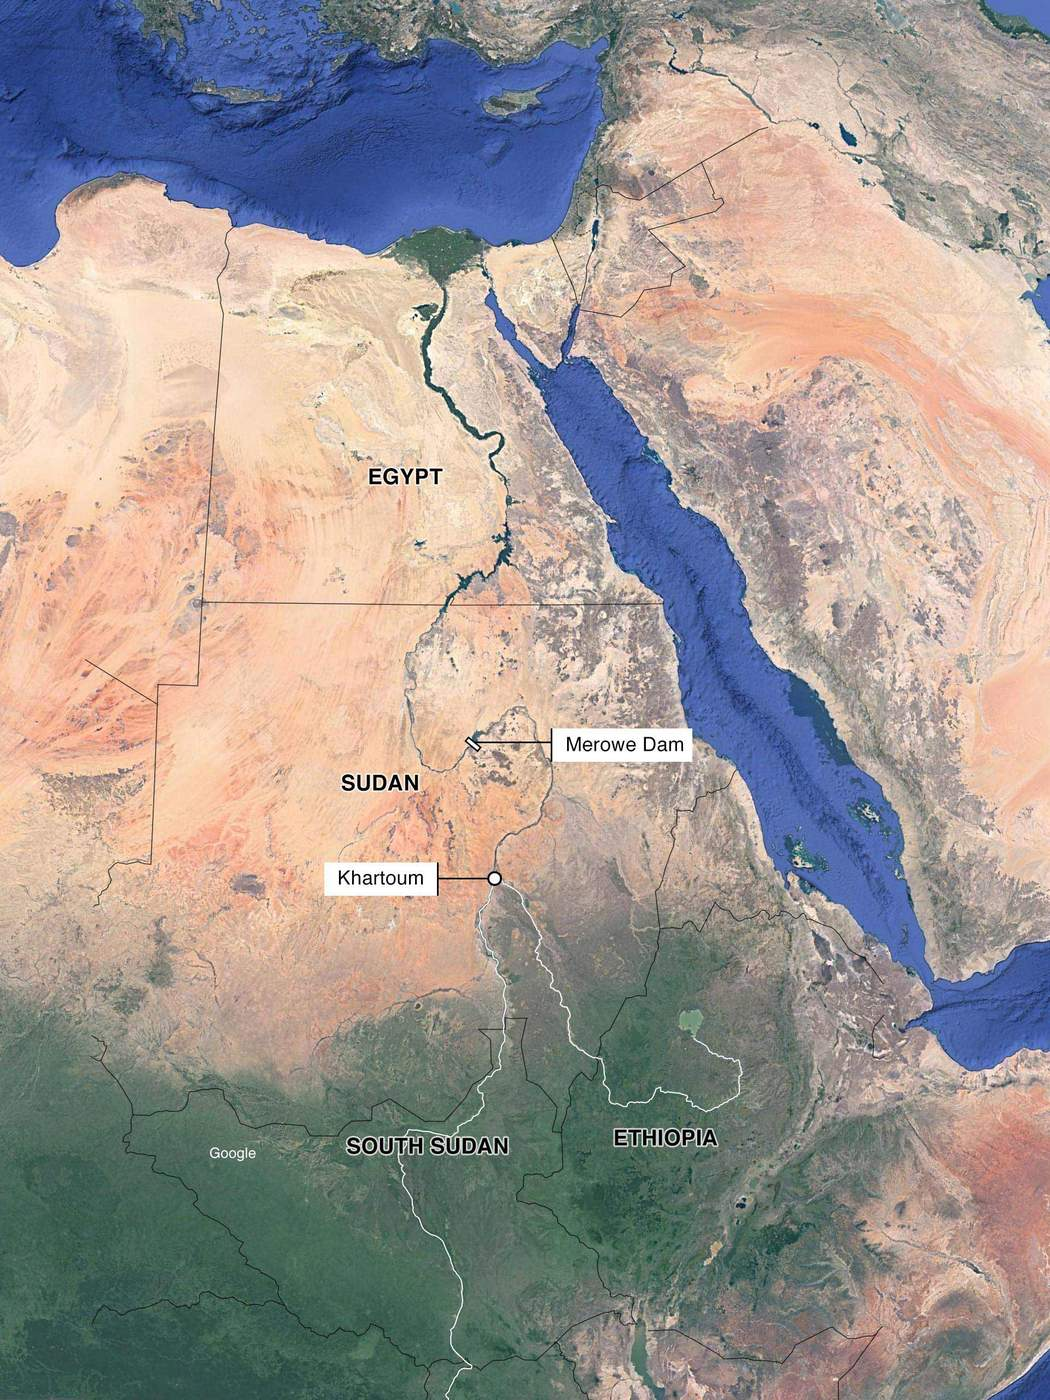 Death of the Nile - BBC News